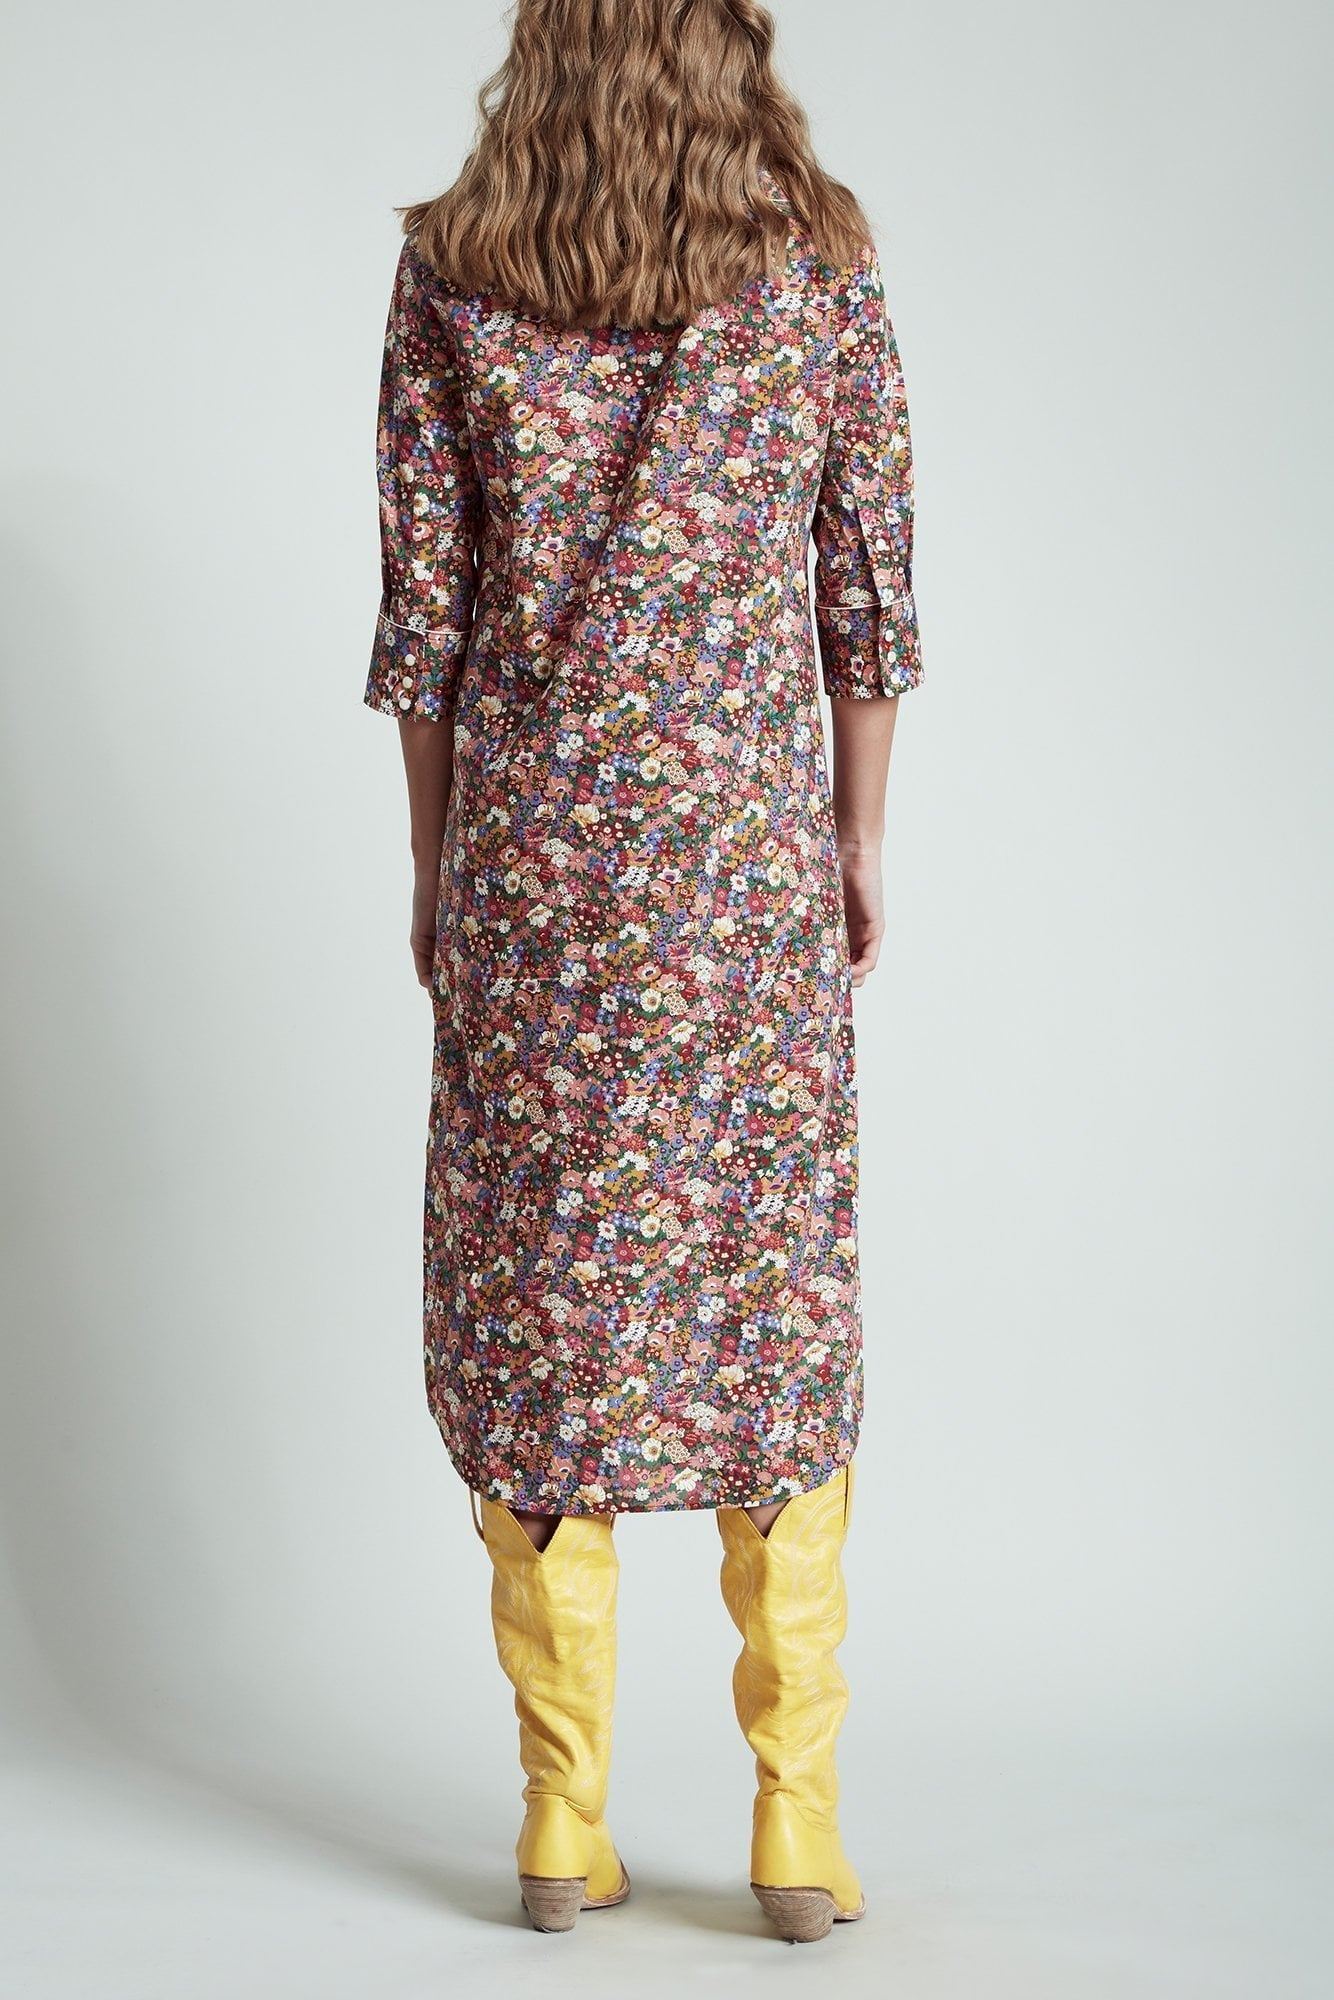 ¾ Sleeve Cowboy Dress– Multicolor Floral